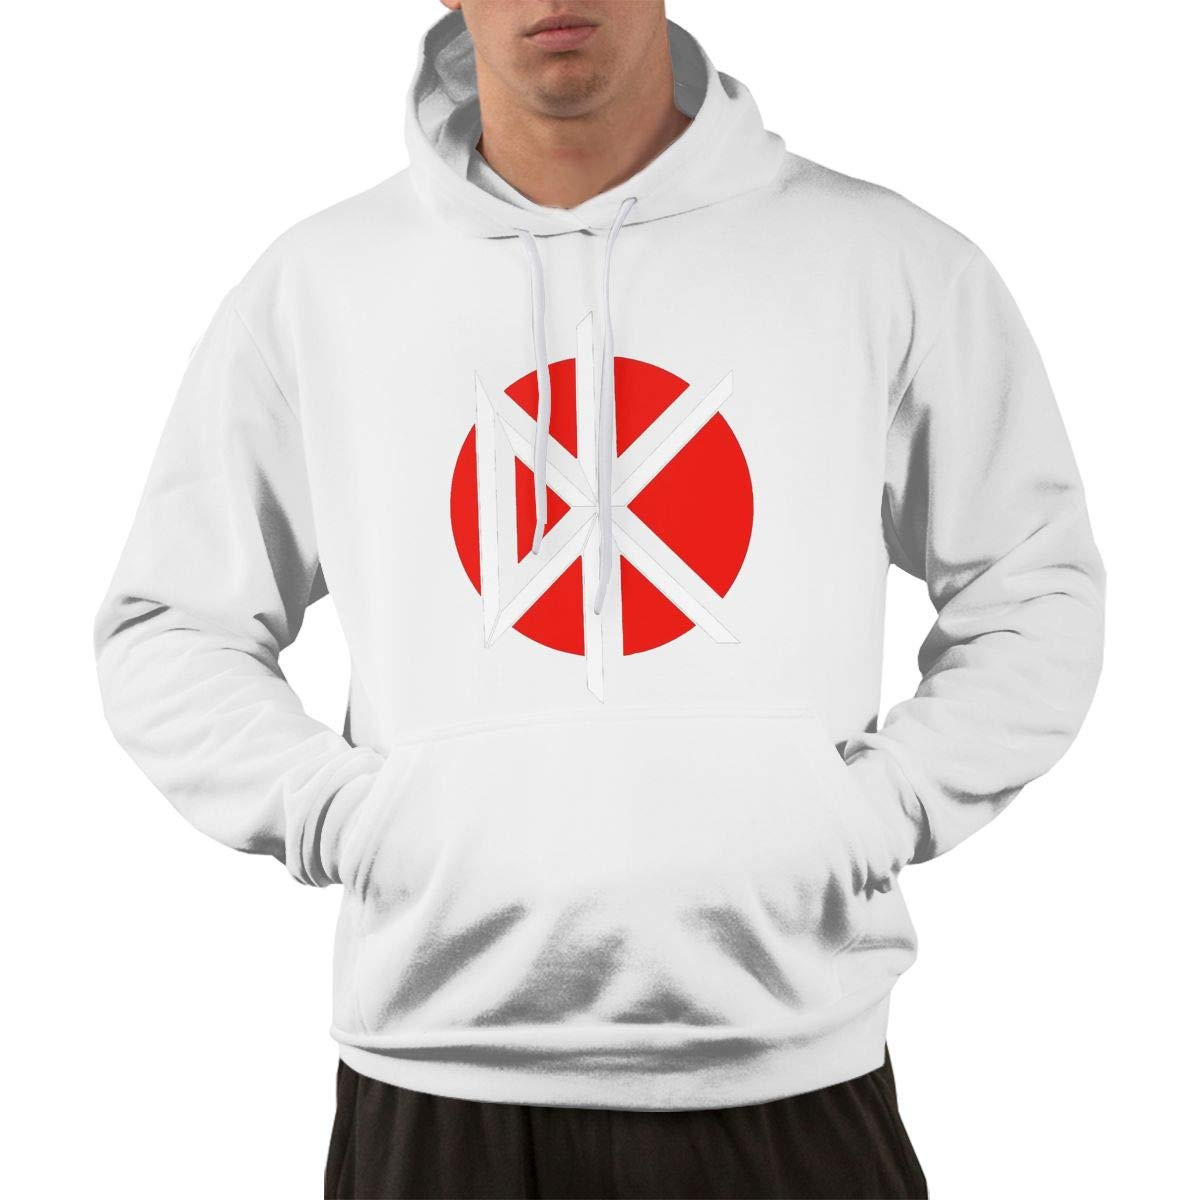 Ricki J McInnis  Dead Kennedys Men's Pocket Fashion Handsome Comfortable Hoodie Sweater